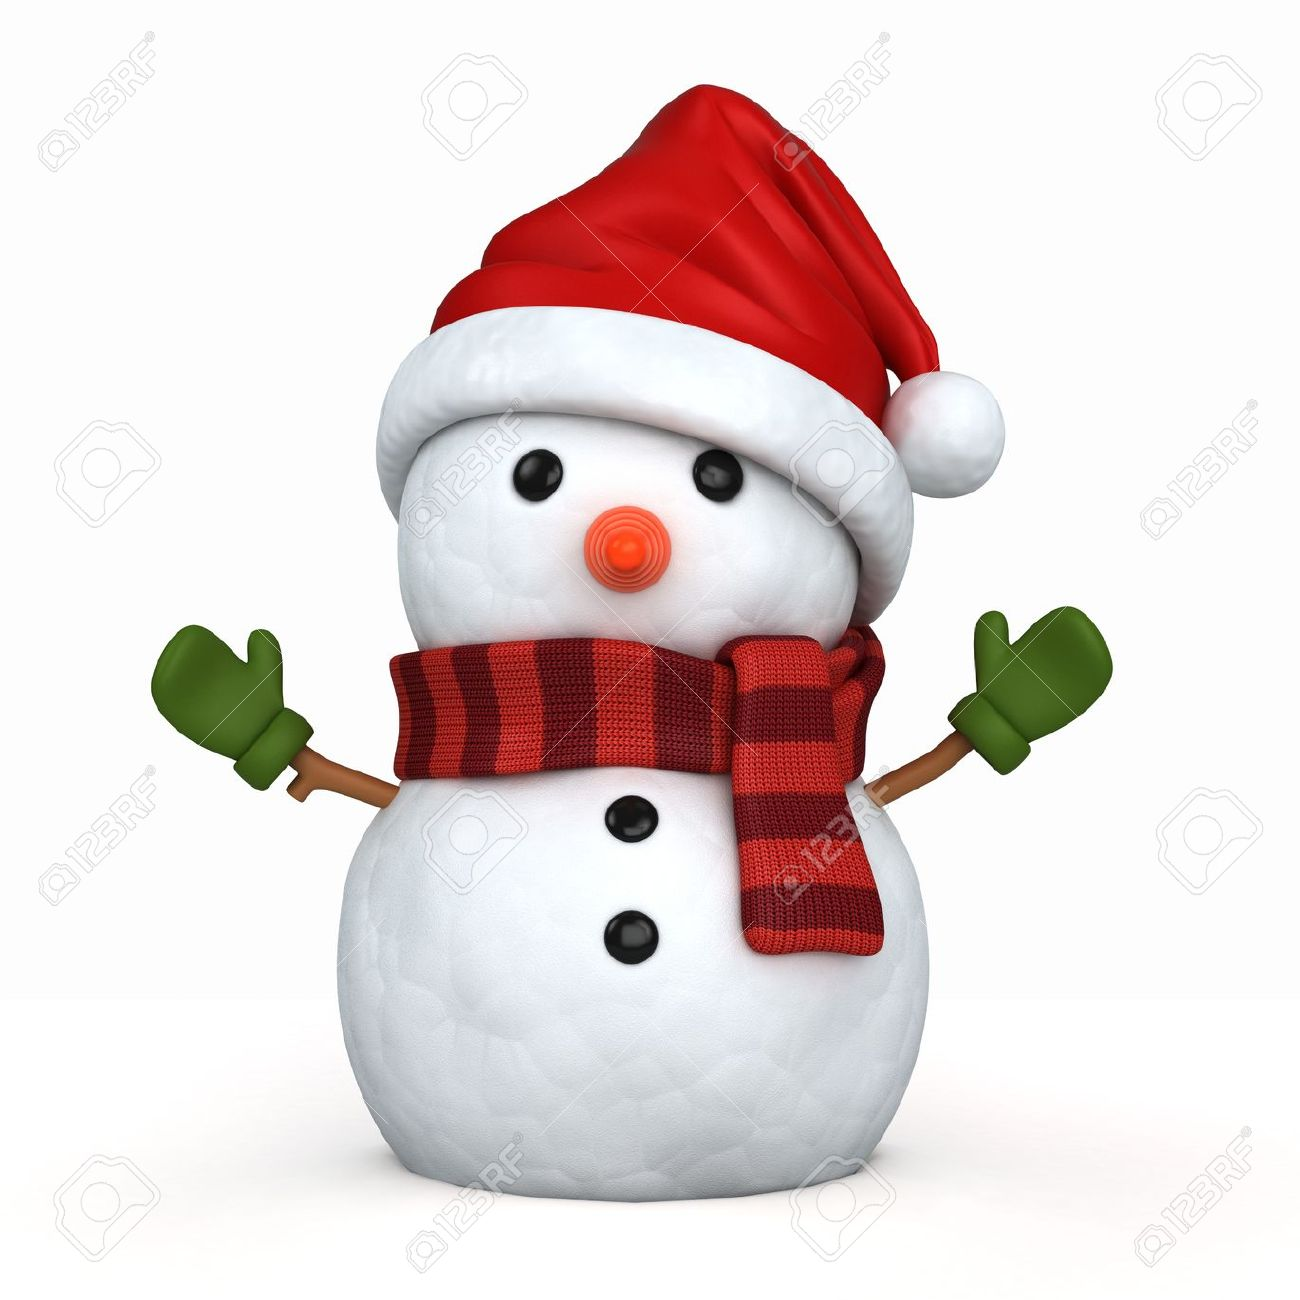 3d render of a snowman wearing santa hat and gloves Stock Photo - 15783673